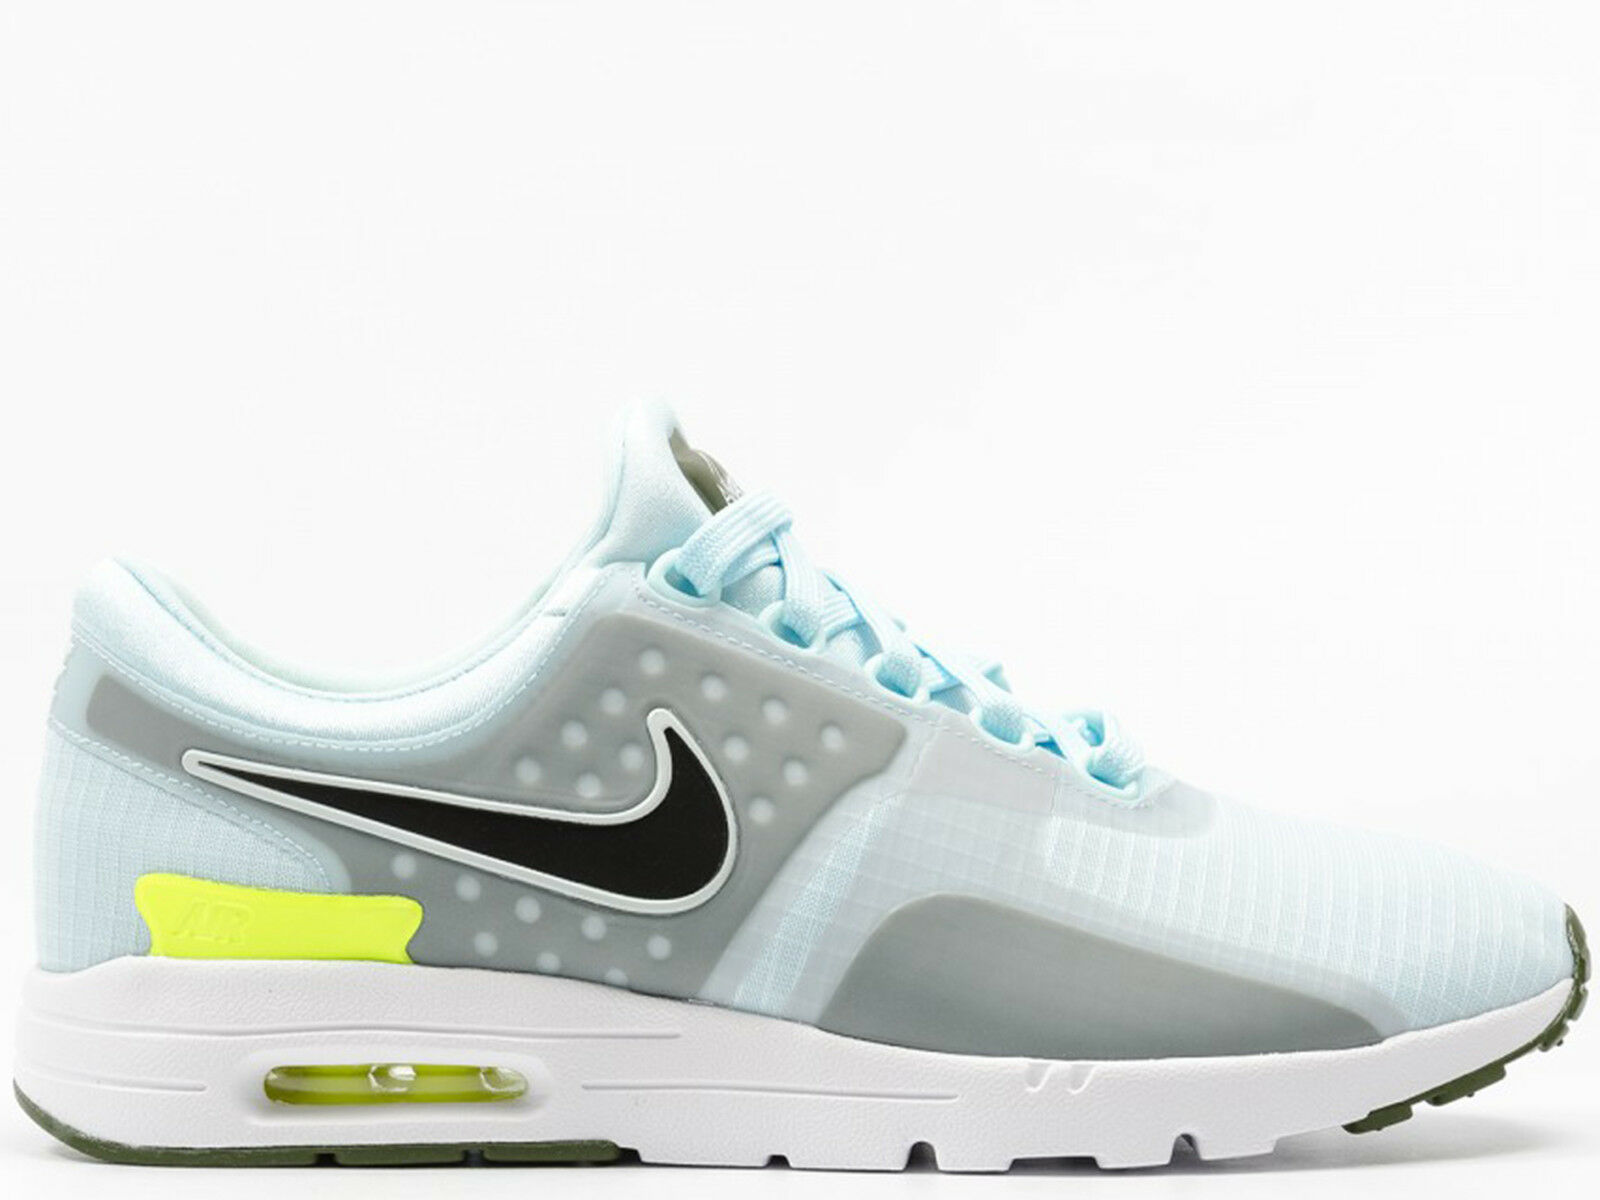 Damen Brandneu Nike Air Max Zero Si Athletic Design Era Turnschuhe